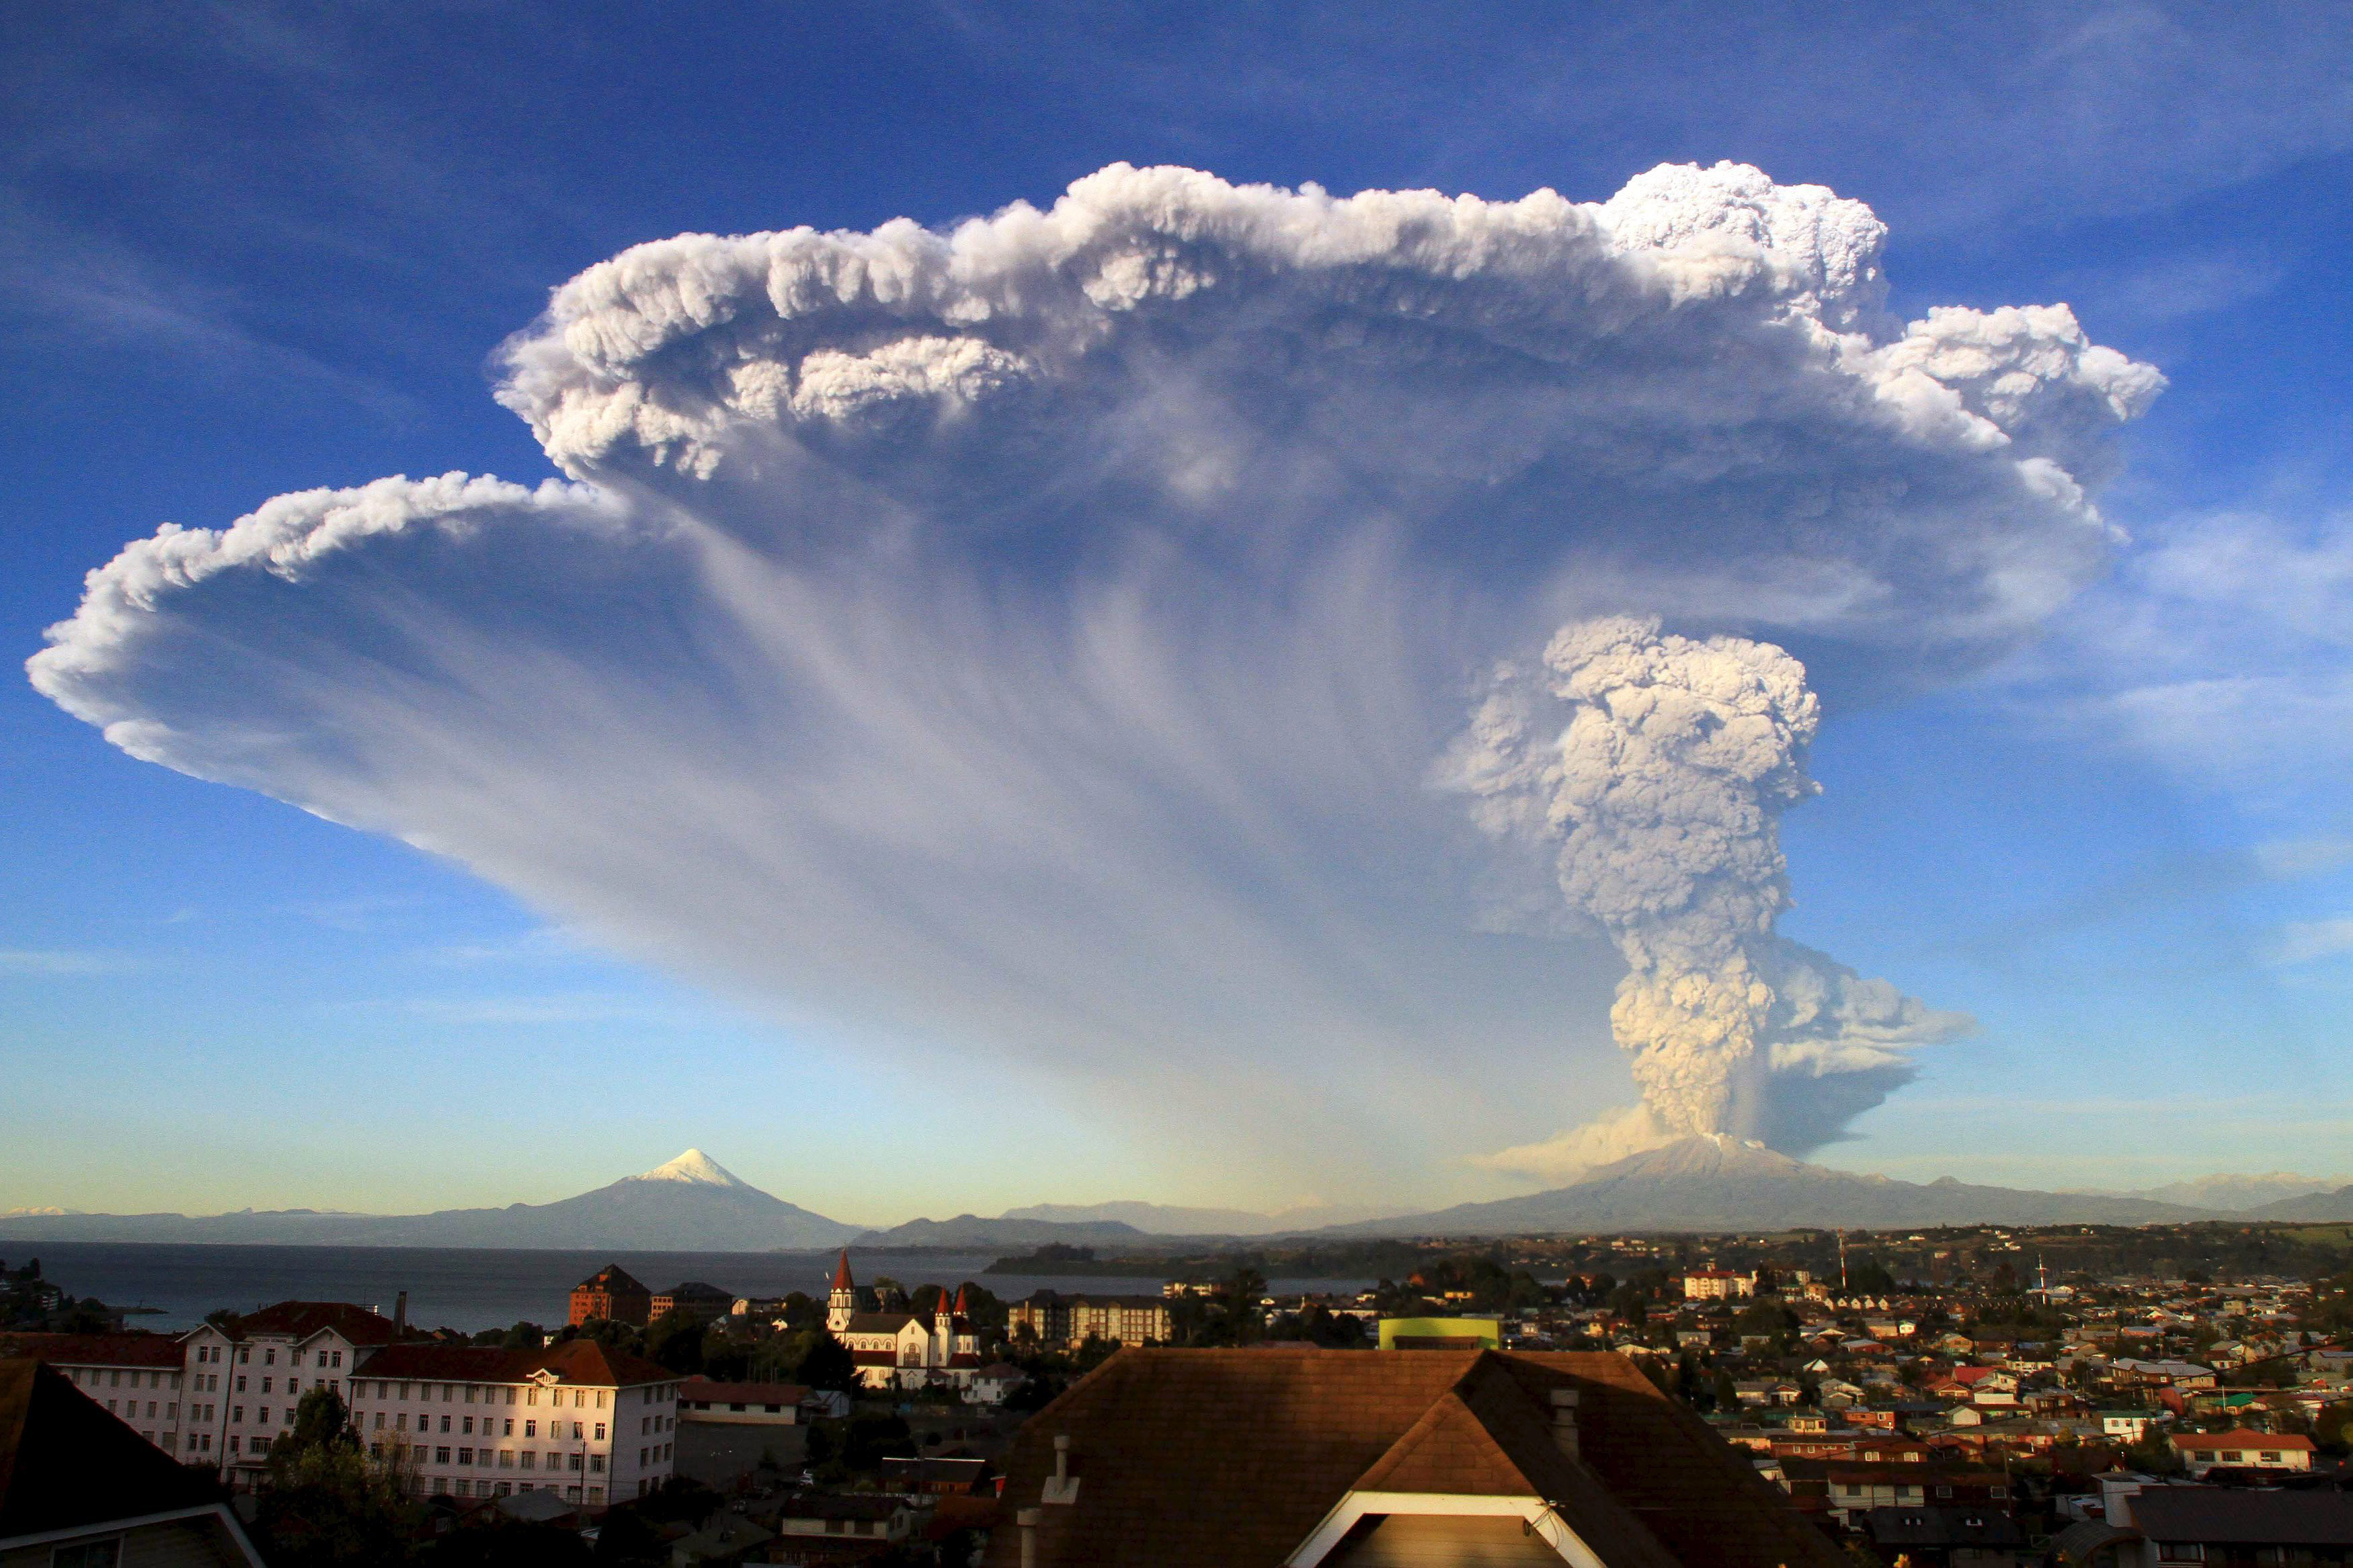 Ash rises from the Calbuco volcano, seen from Puerto Varas, just miles north of the eruption, April 22, 2015.